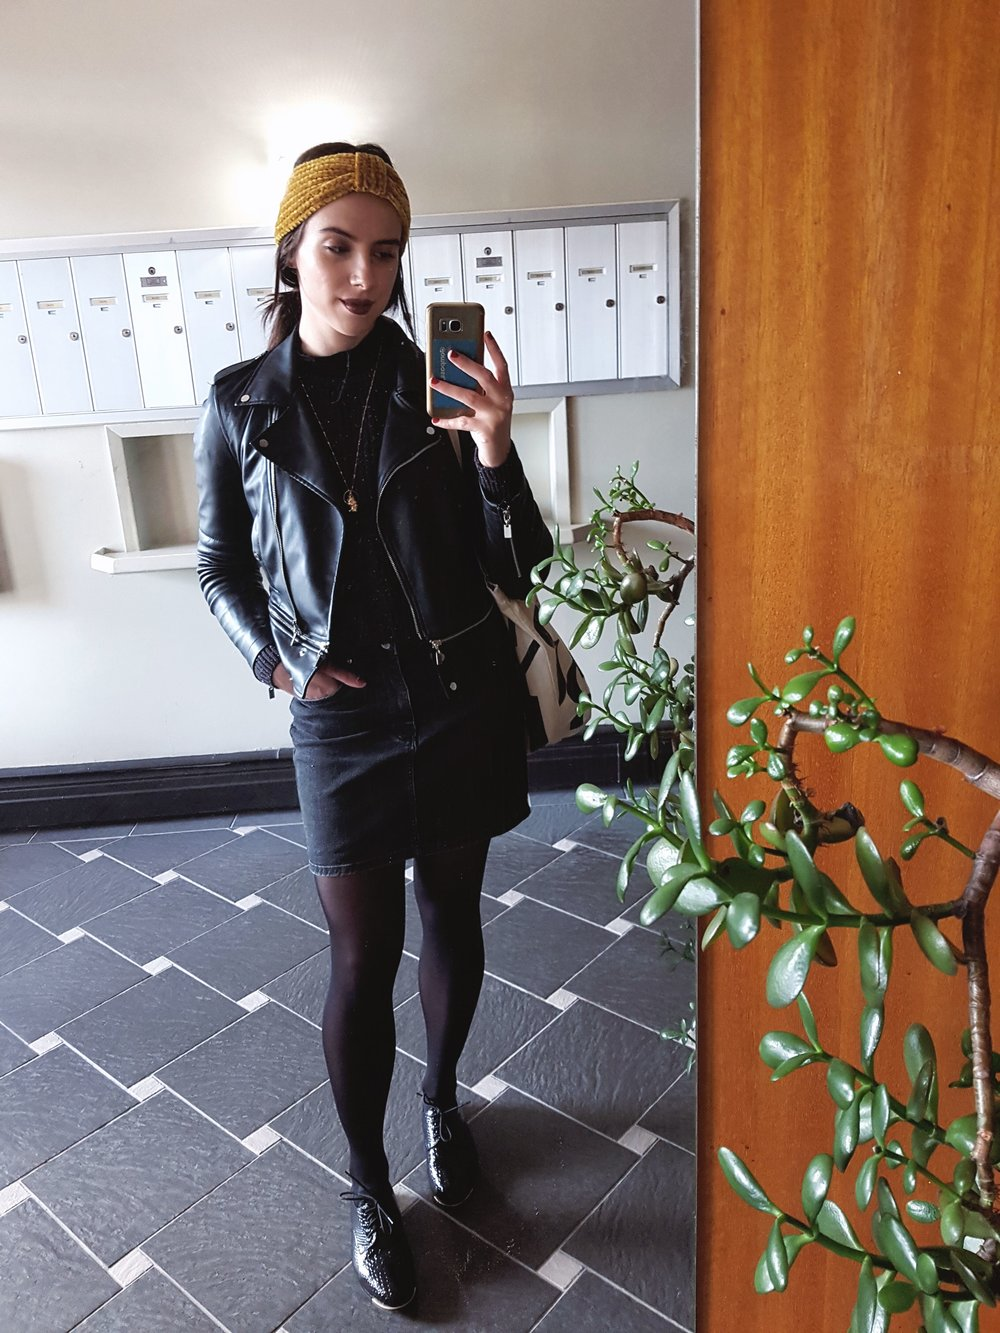 WEDNESDAY - Dynamite turtleneck, American Apparel sweater, Zara skirt & jacket, shoes bought in Russia, Forever21 headwrap*My fave outfit of the week - loving the goth vibey for October!